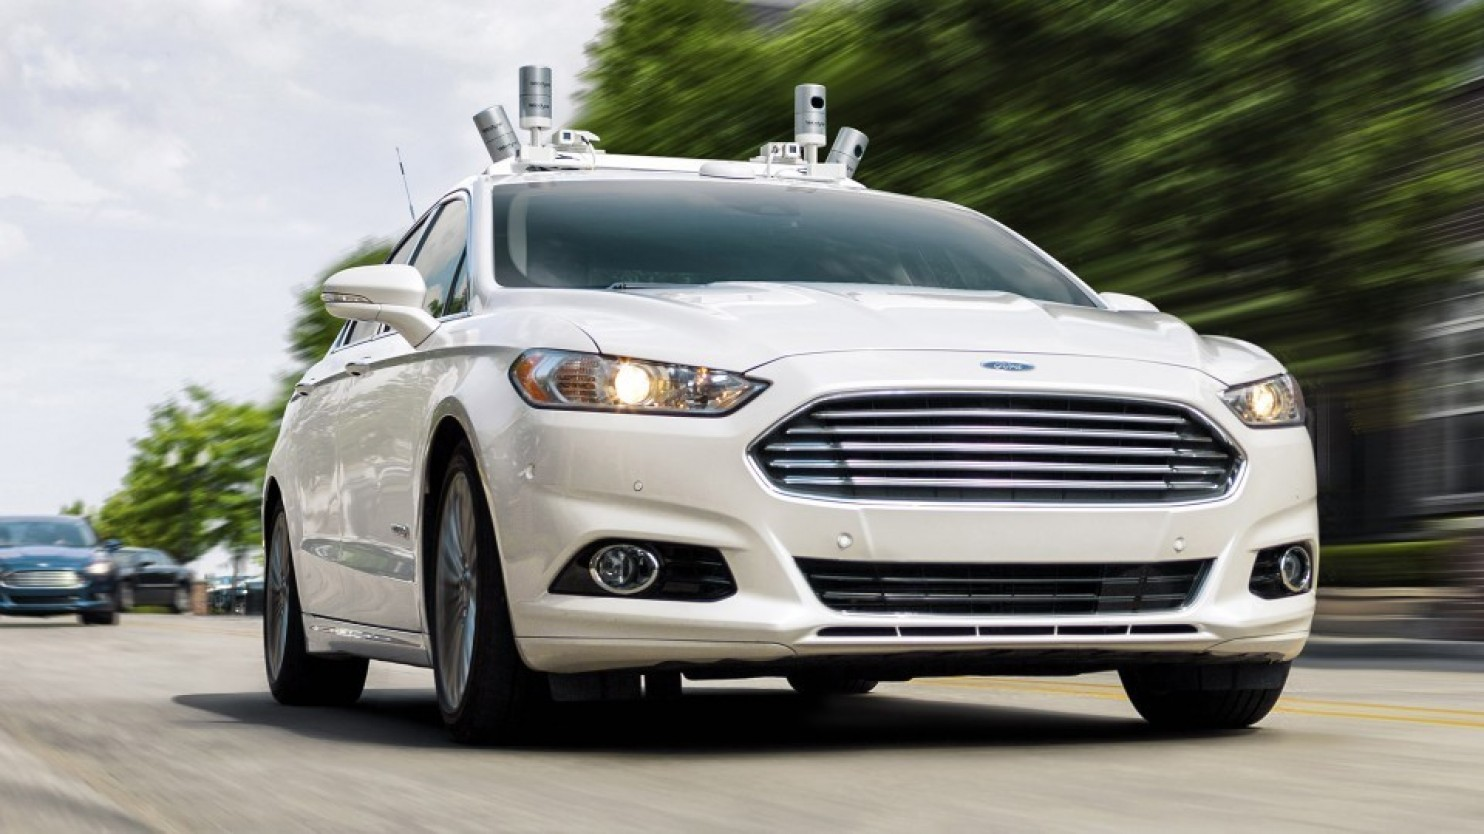 The unexpected ways our Lives will change when Cars Drive themselves